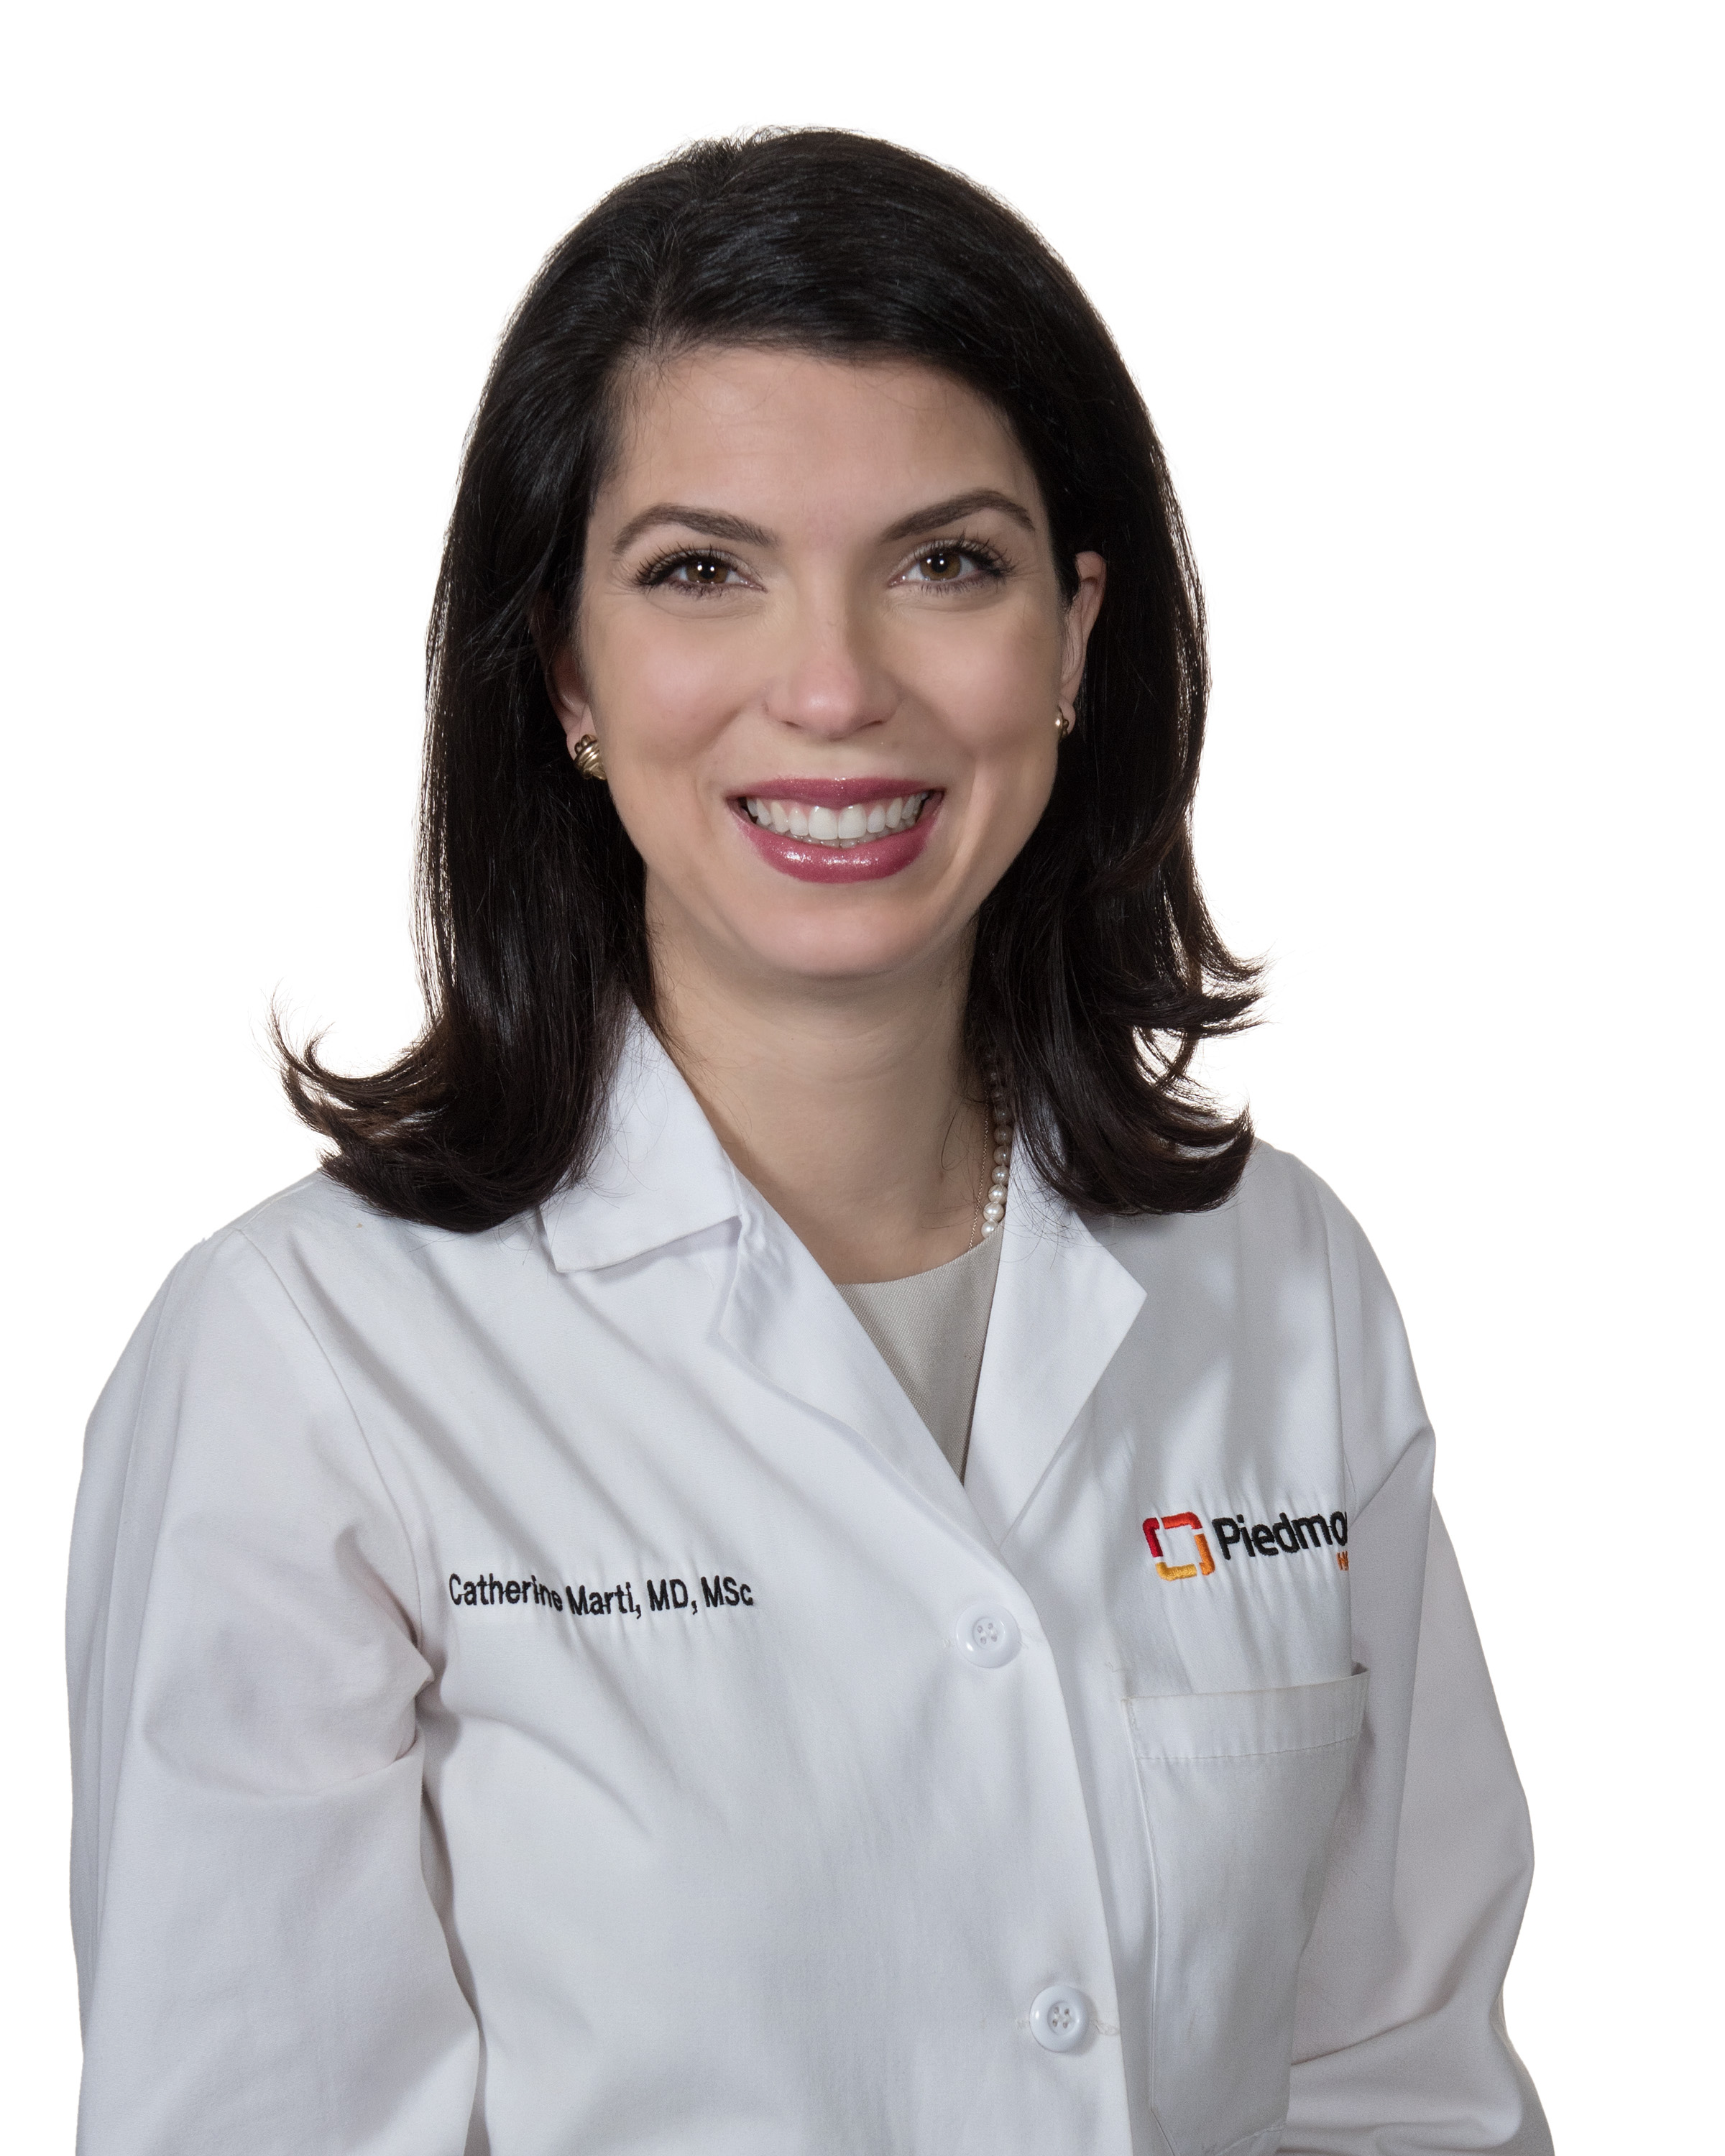 Catherine Marti, MD